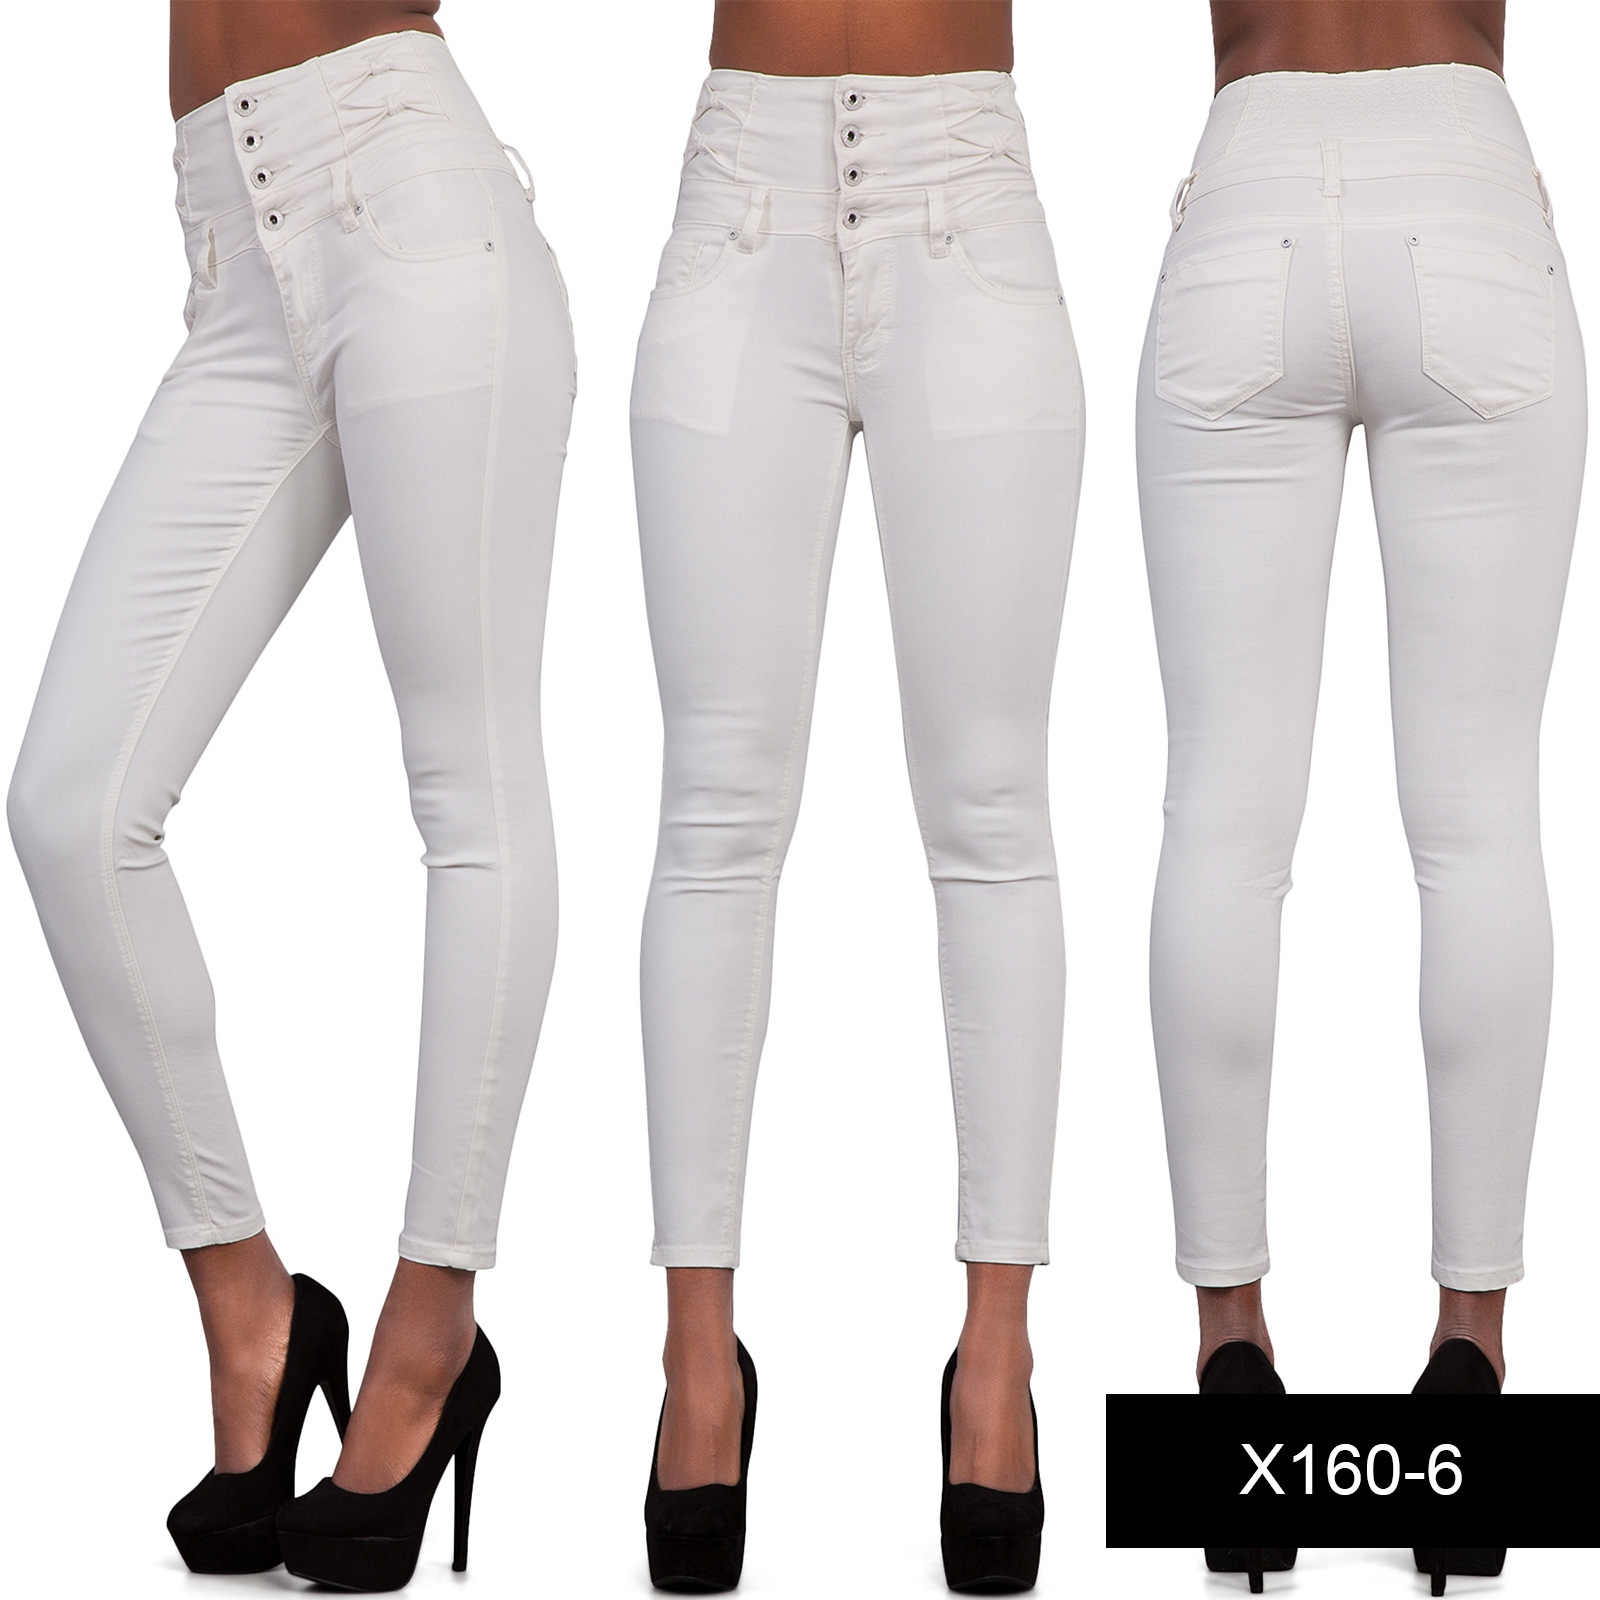 Free shipping & returns on high-waisted jeans for women at trueiupnbp.gq Shop for high waisted jeans by leg style, wash, waist size, and more from top brands. Free shipping and returns.